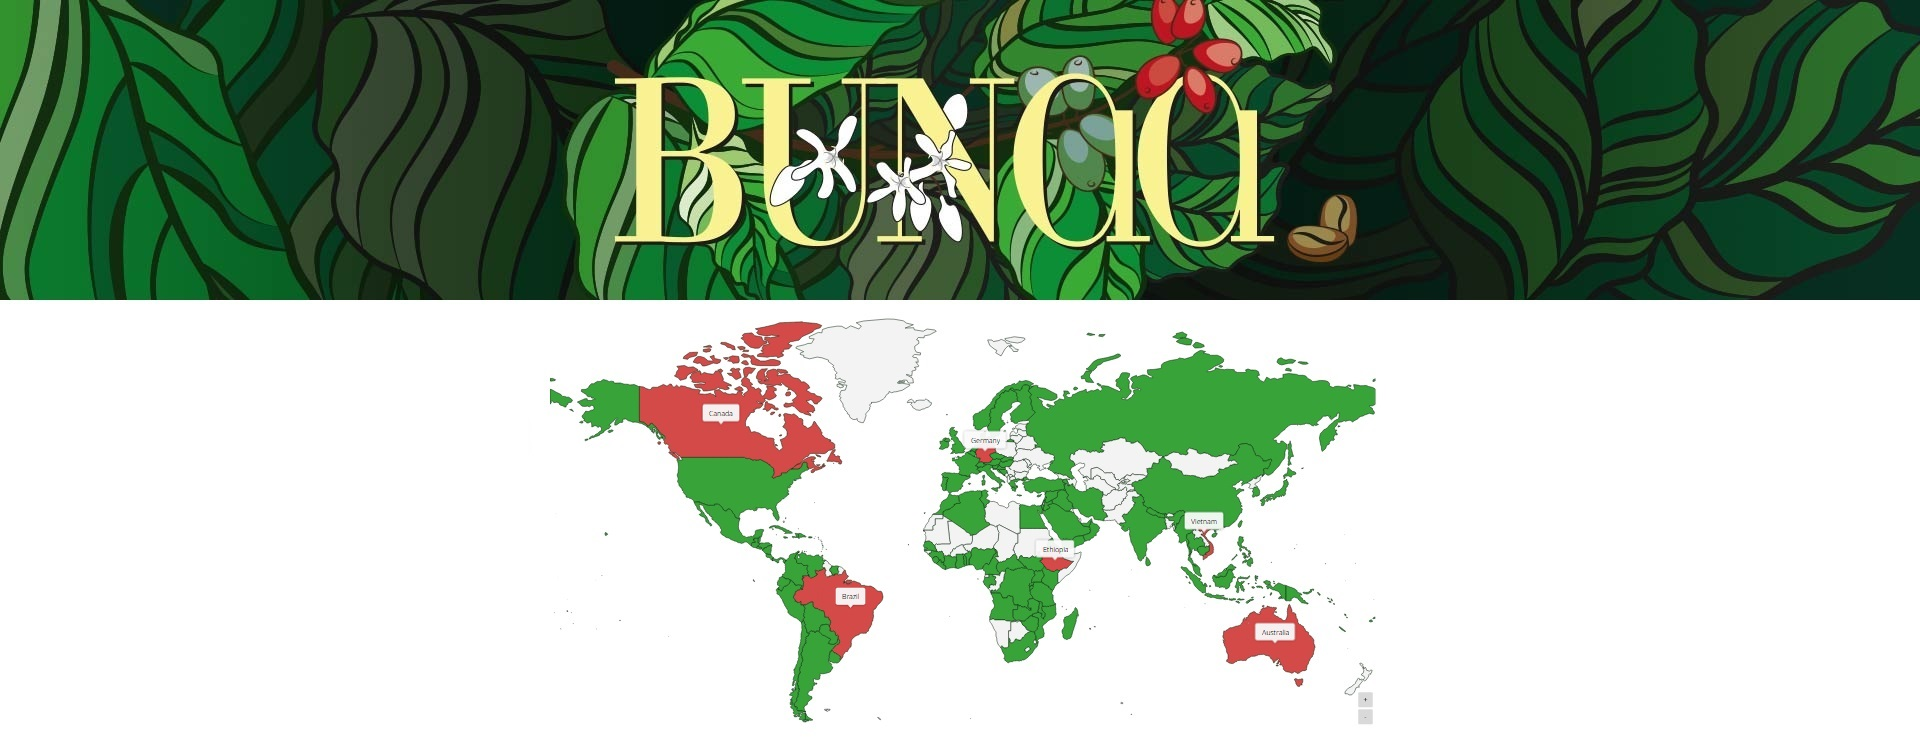 Click through the worldwide coffee cultures